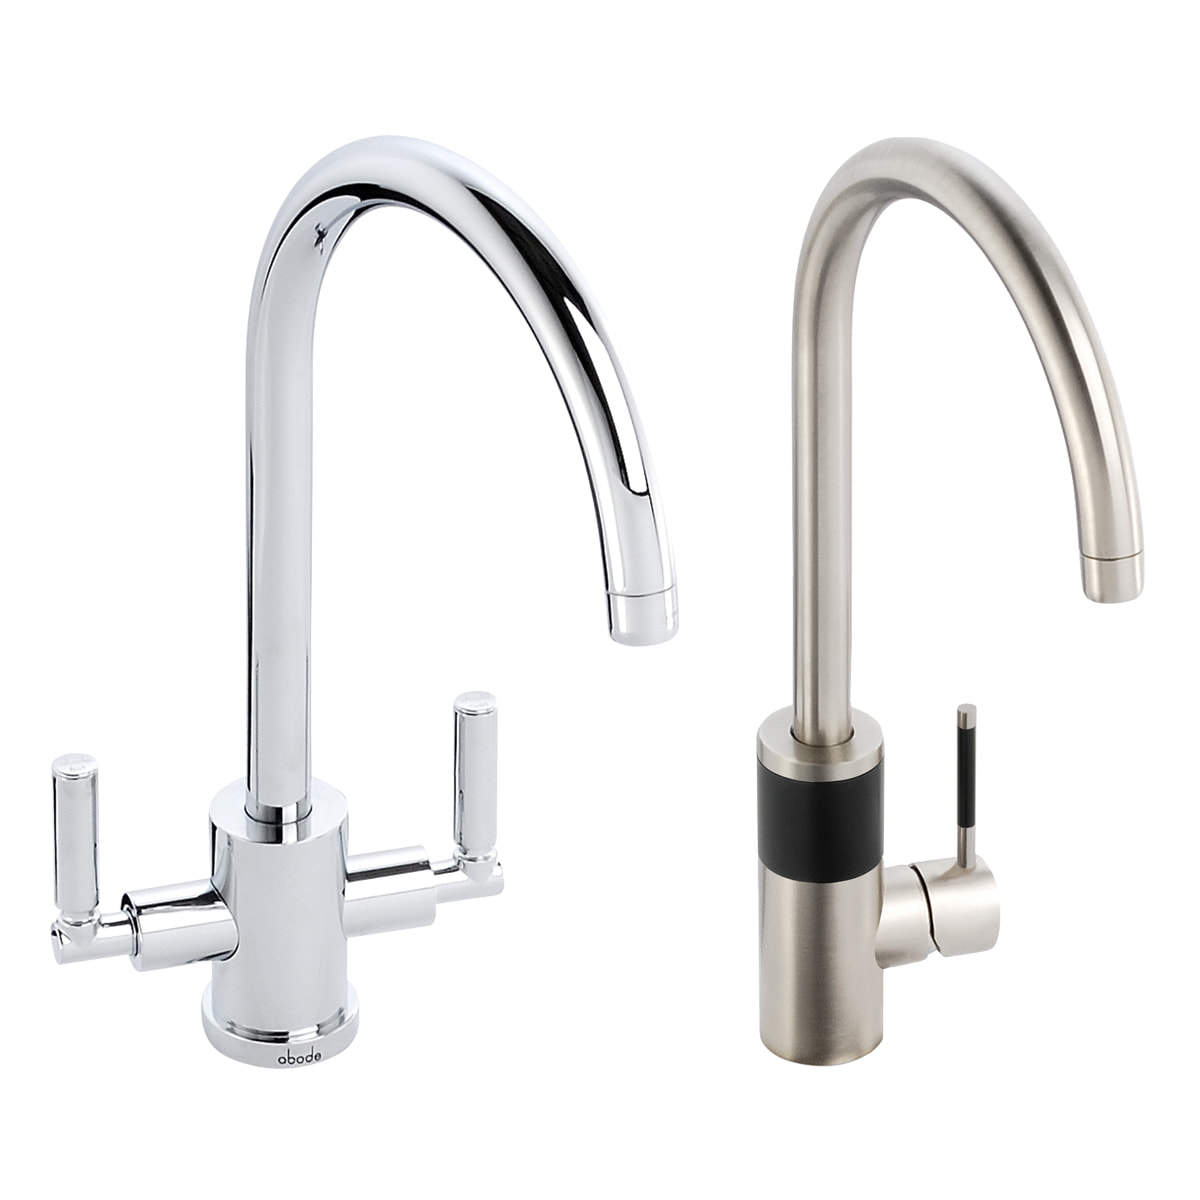 2 & 3 Way Water Filter Taps